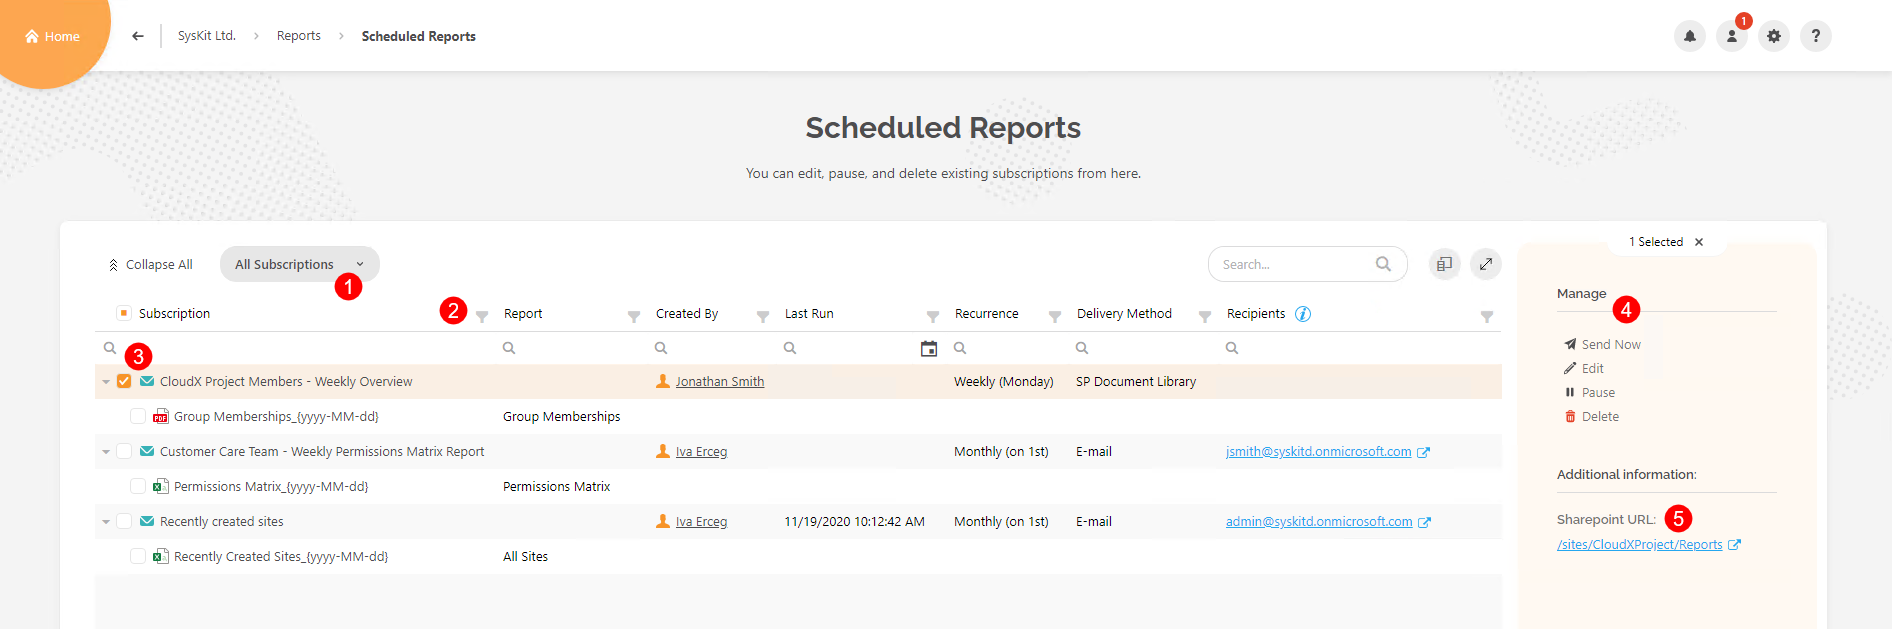 Scheduled Reports screen - Managing a subscription